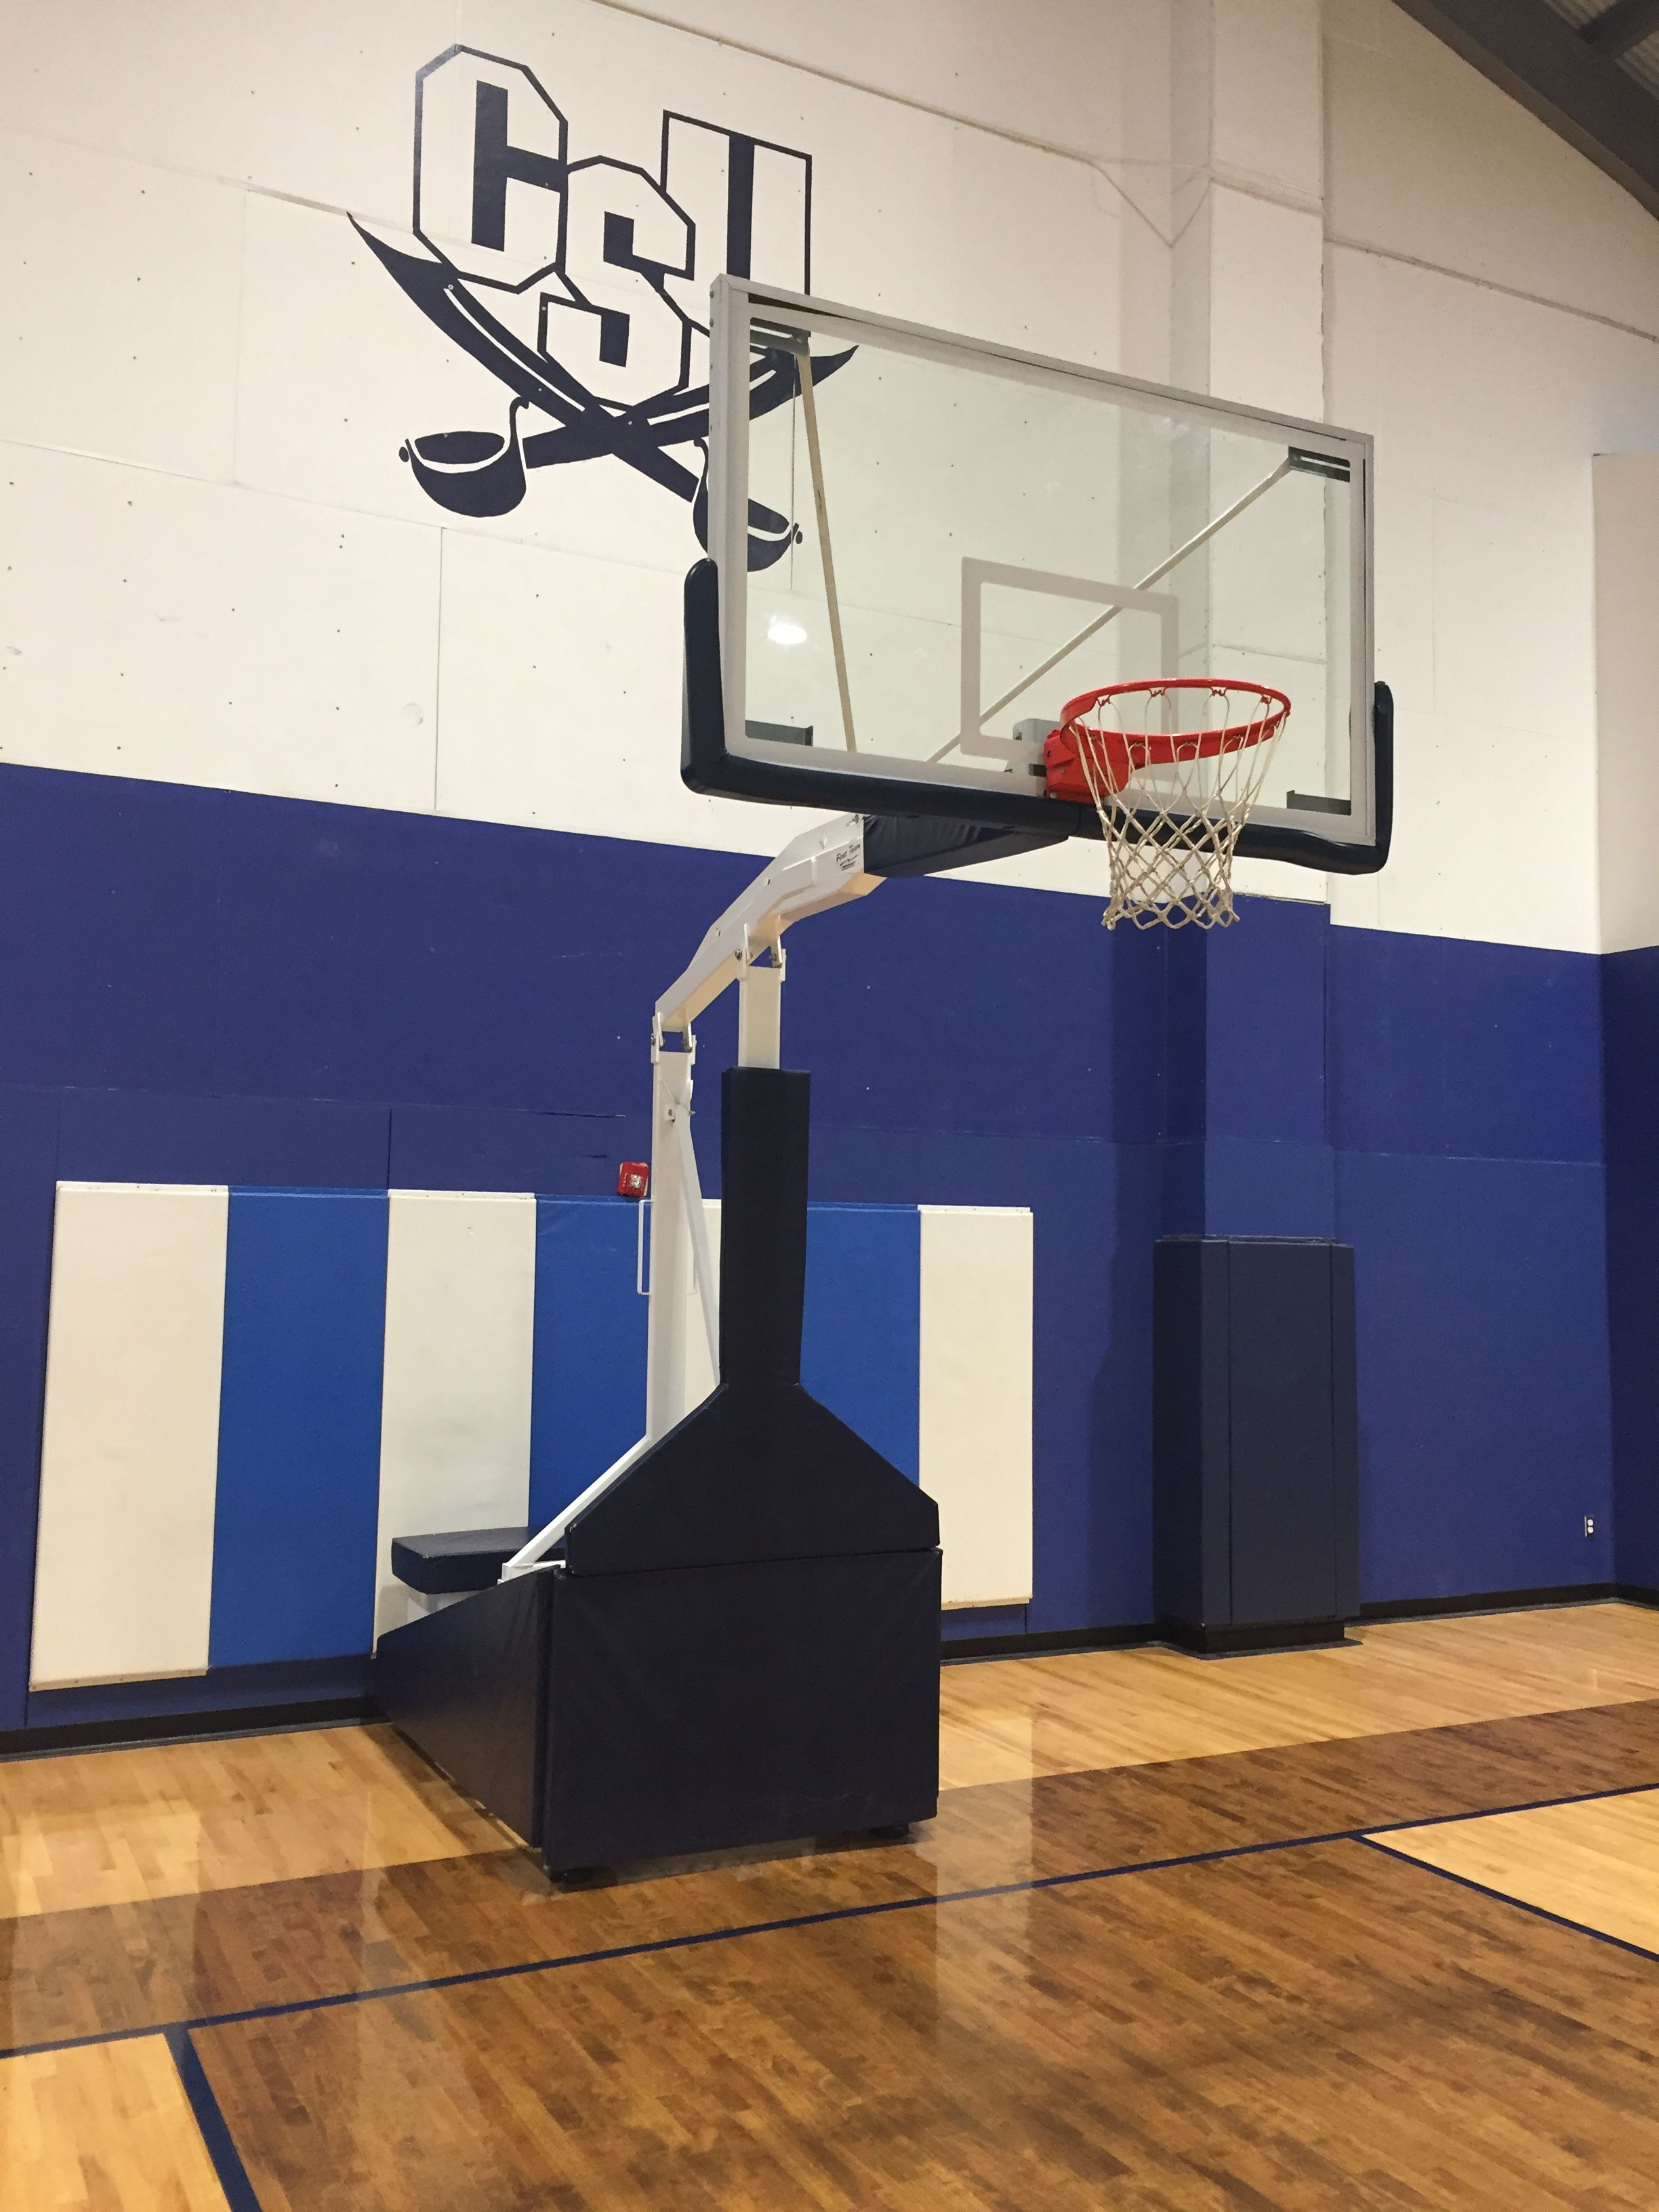 First Teamu0027s TEMPEST TRIUMPH Portable Basketball Goal. This Unit Features A  Regulation Tempered Glass Backboard